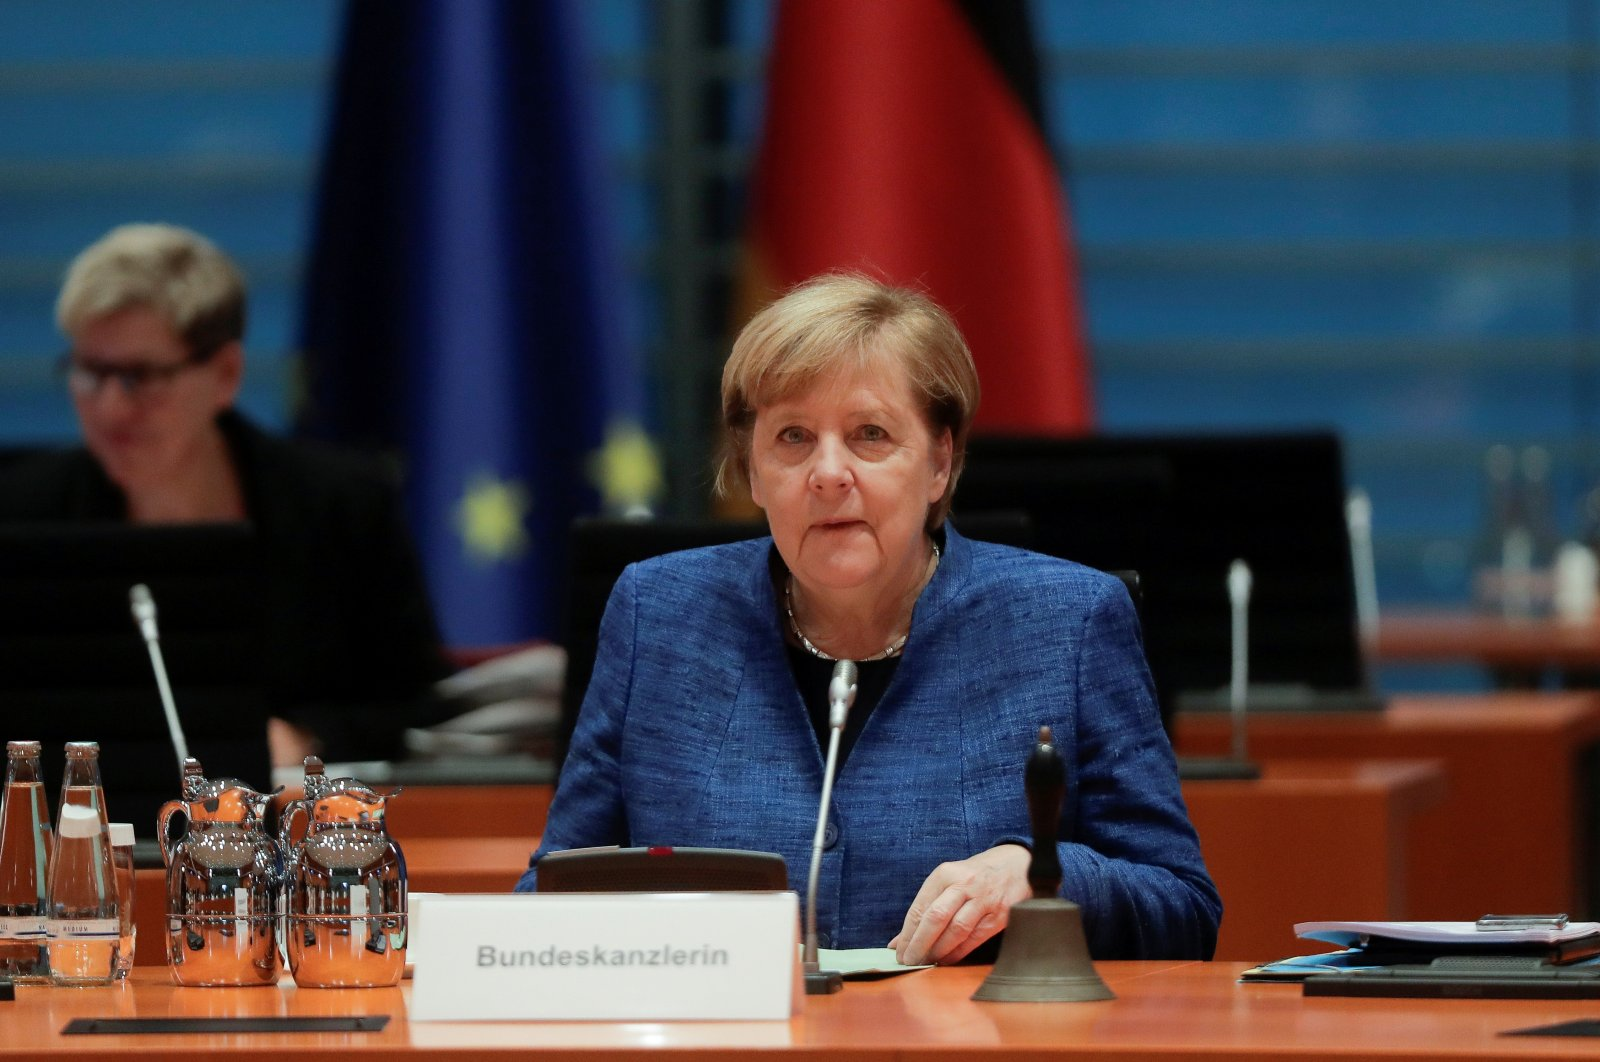 German Chancellor Angela Merkel attends the weekly Cabinet meeting of the government at the Chancellery, Berlin, Oct. 21, 2020. (REUTERS Photo)